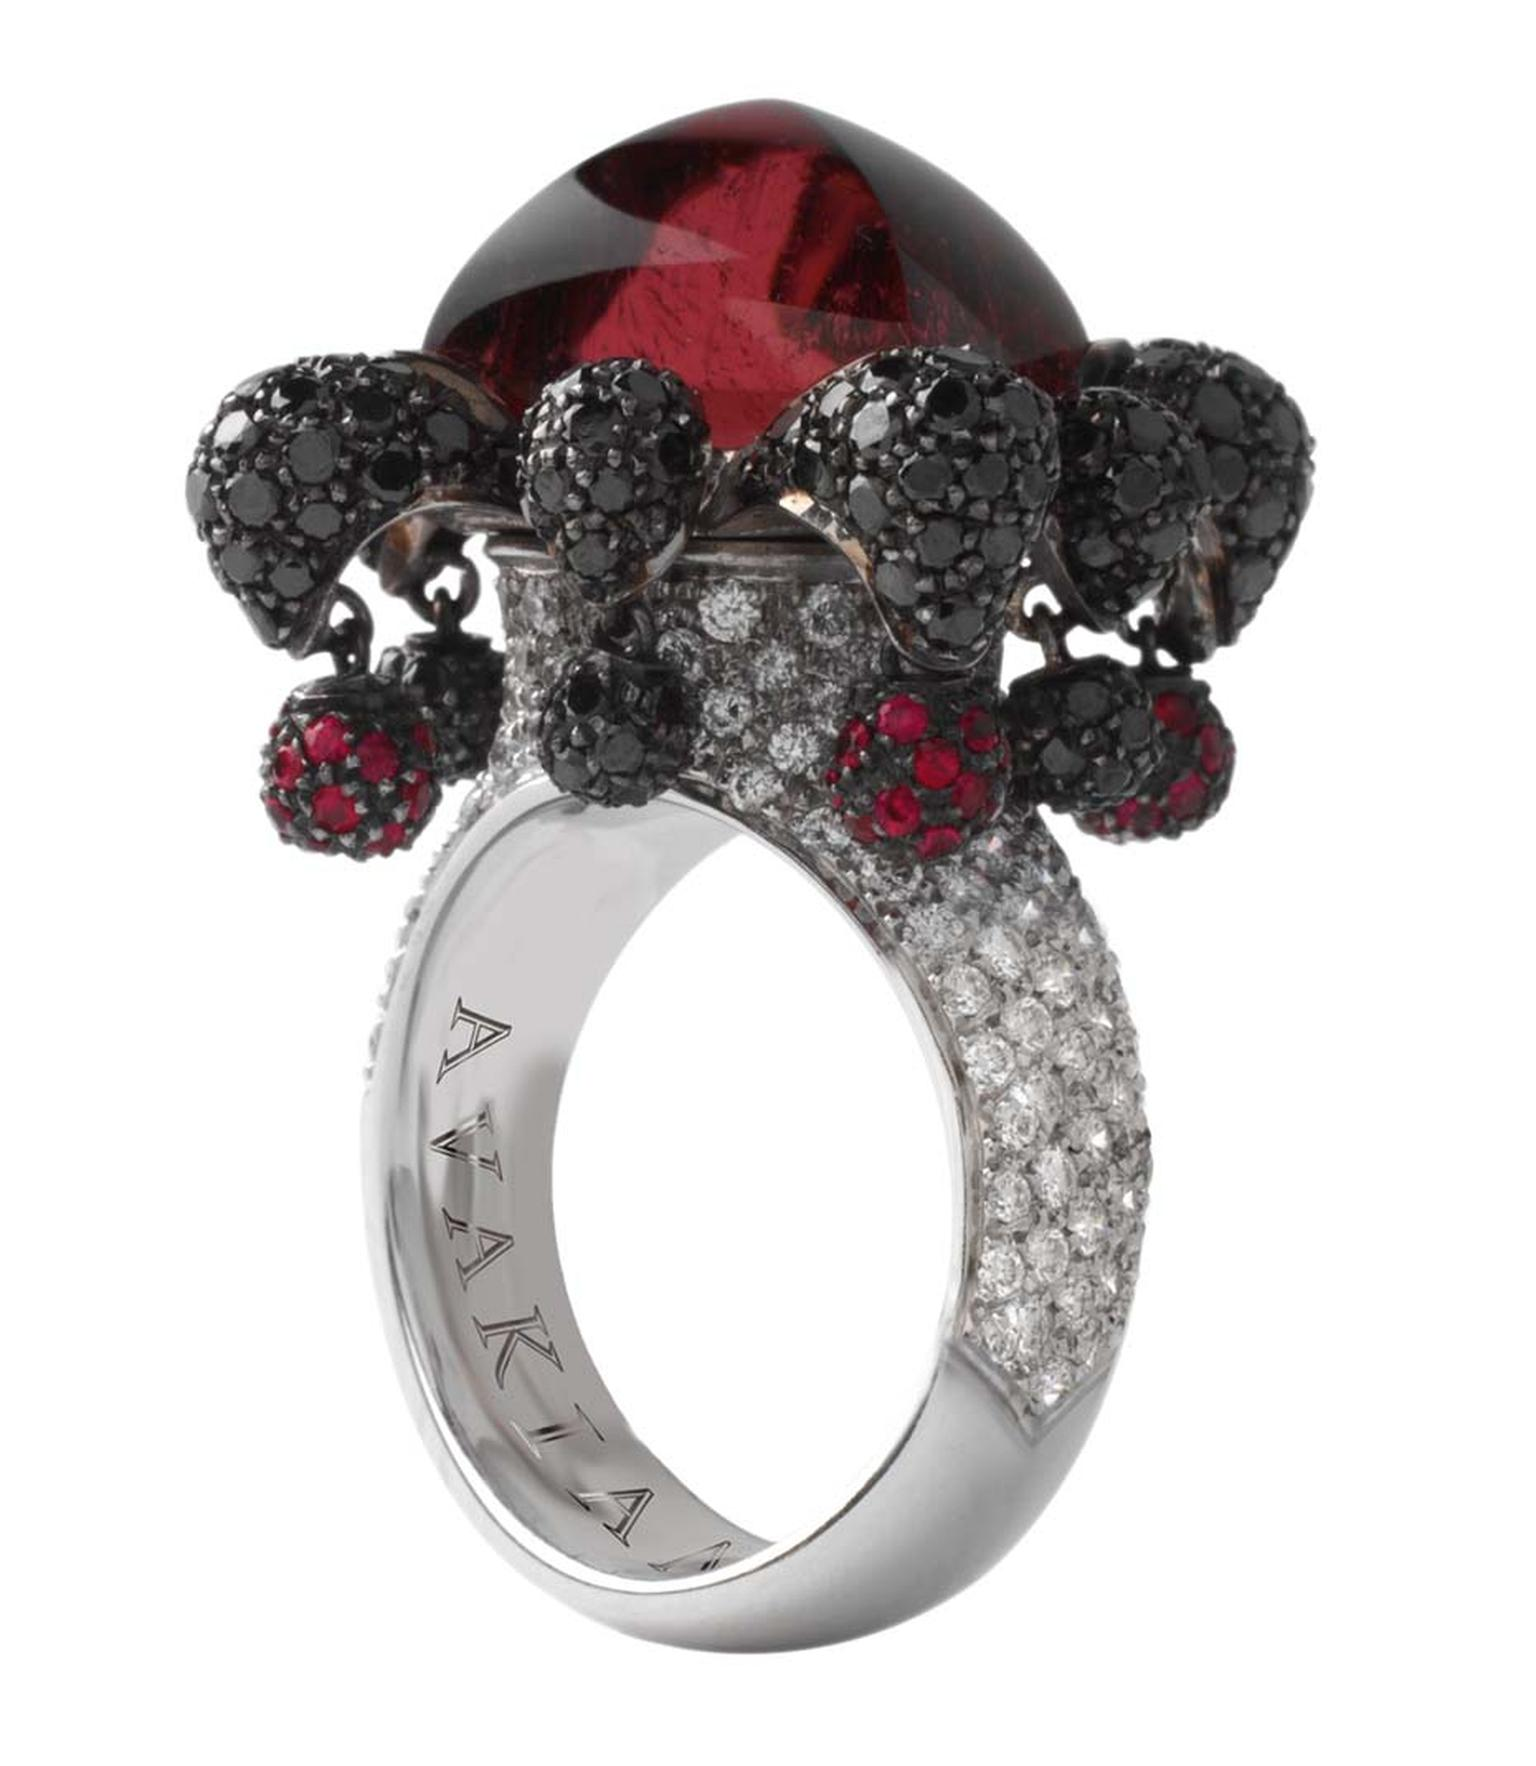 Avakian Joker ring set with rubellites and black and white diamonds